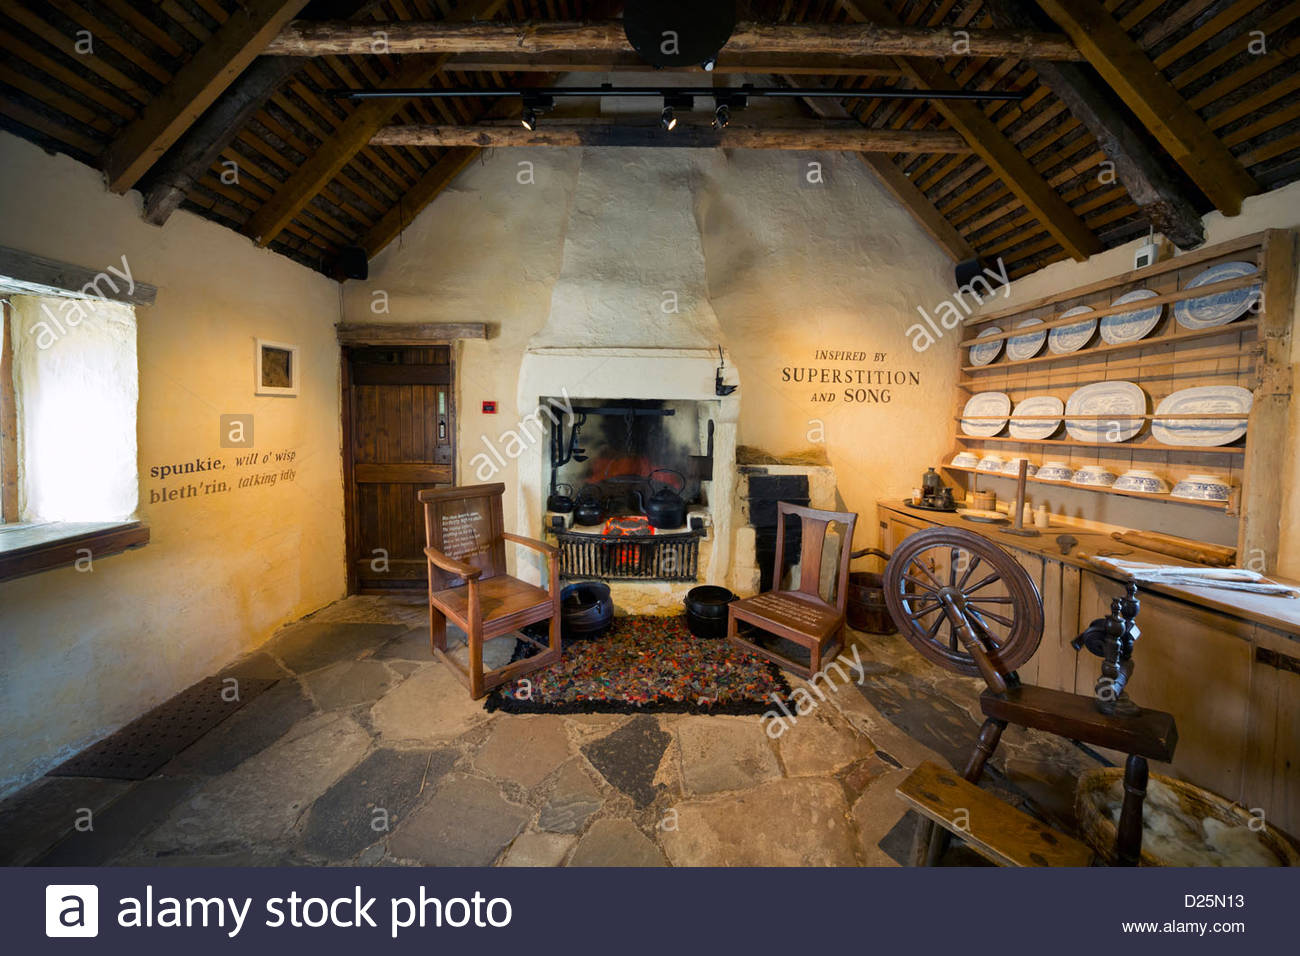 Interior of Burns Cottage, the first home of Robert Burns, Scotland's national poet in Alloway, Ayrshire. - Stock Image